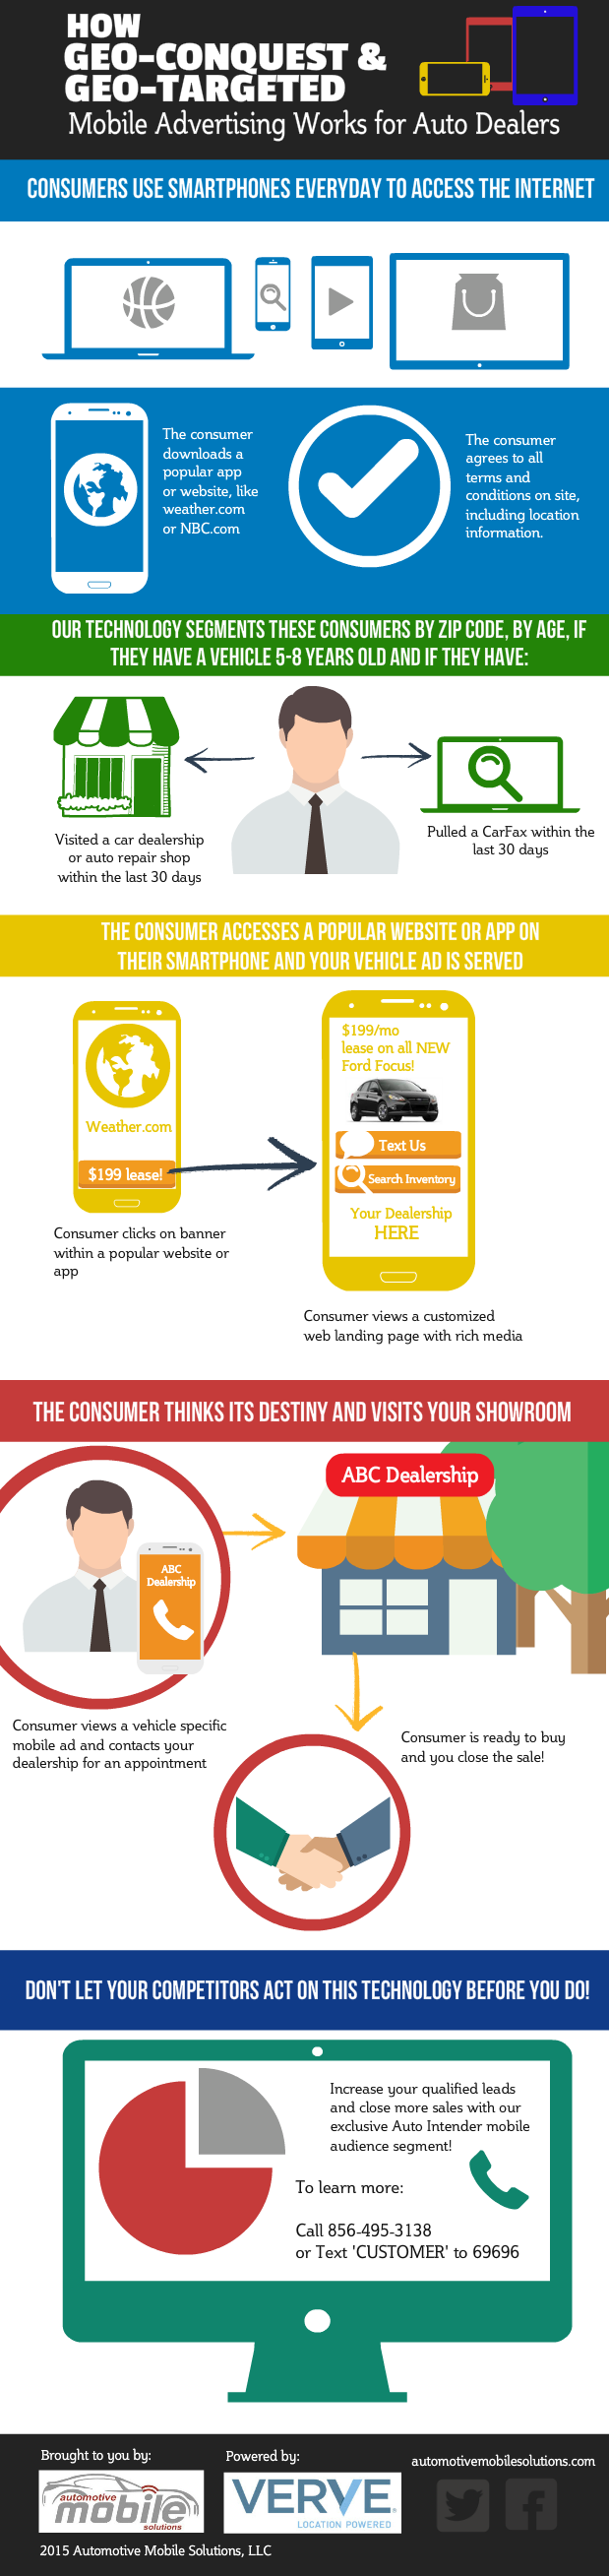 Mobile Marketing for Auto Dealers Infographic